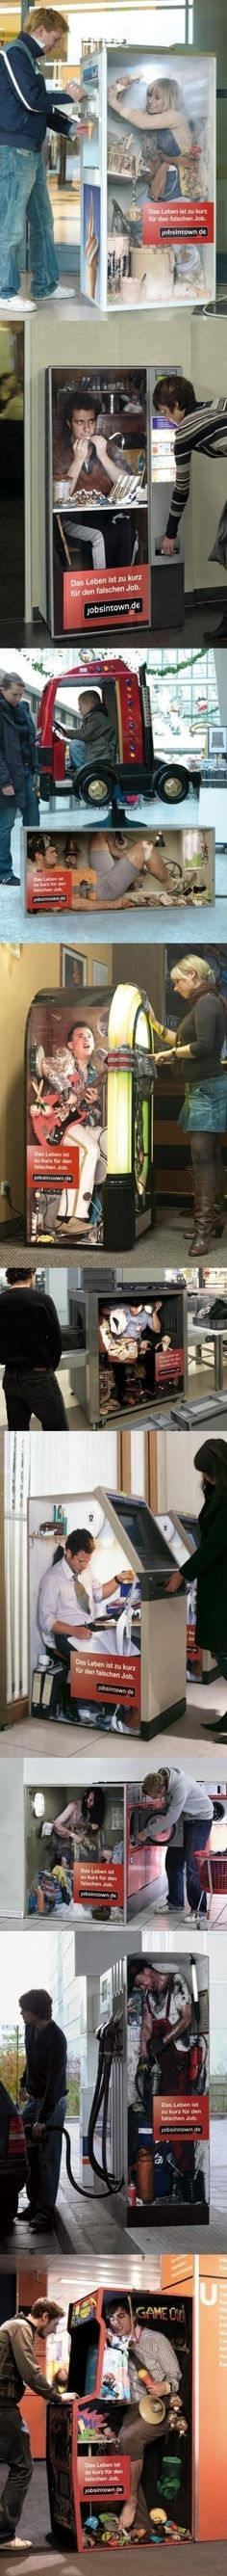 Hilarious advertisements- imagine if this was really what was going on inside machines?